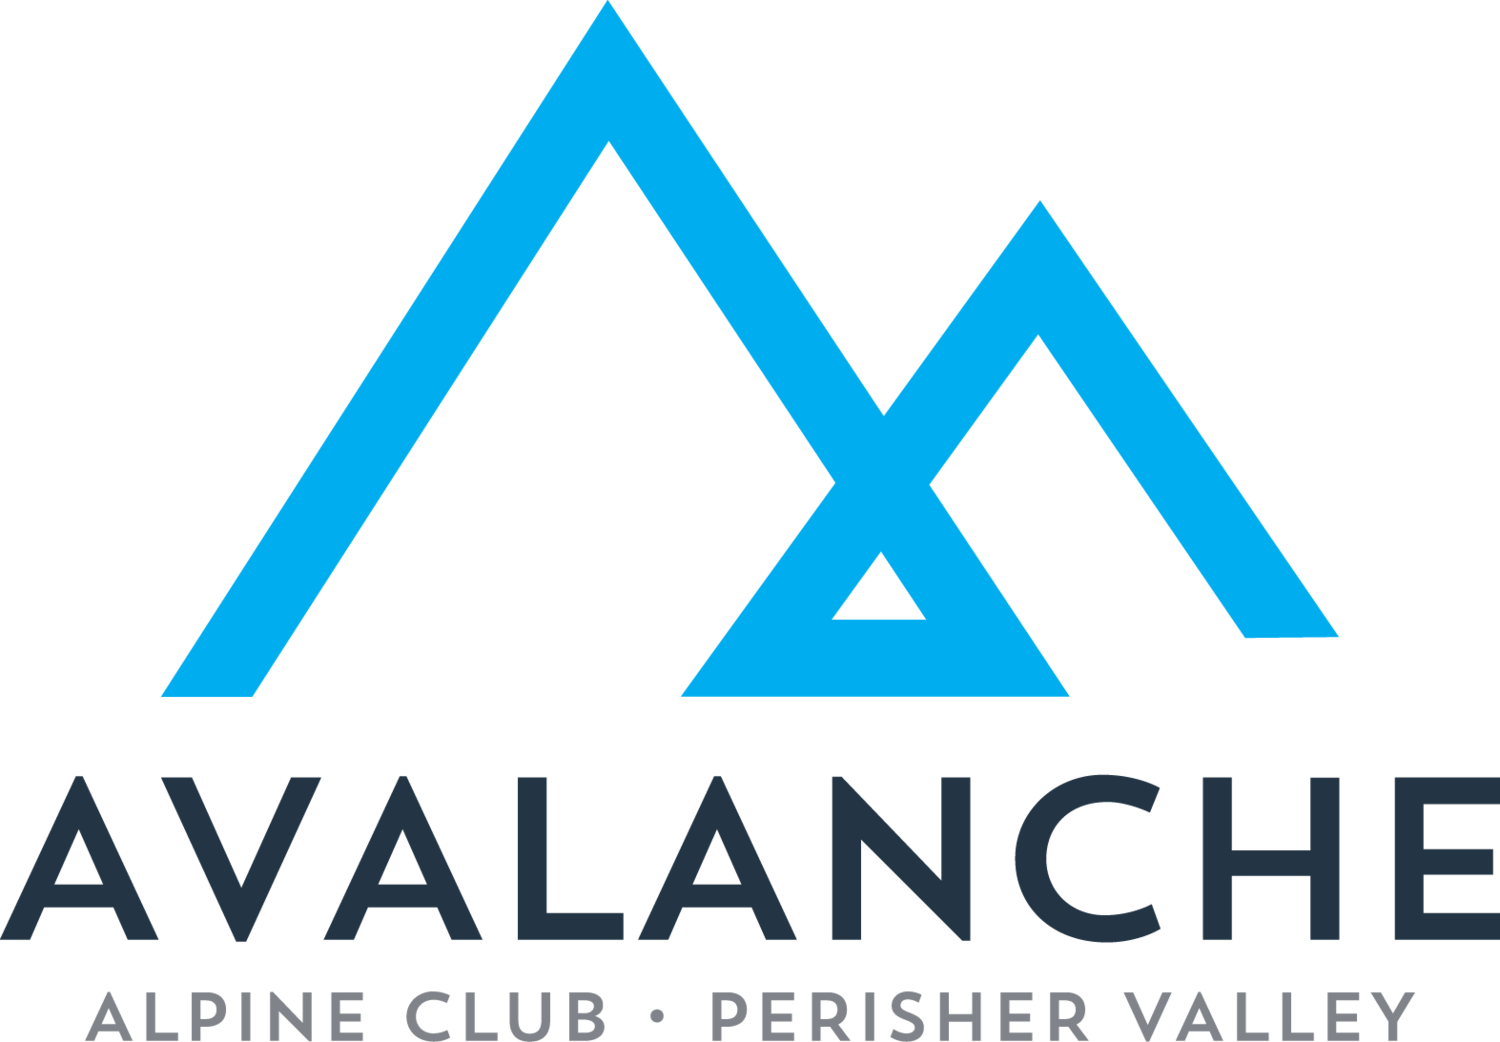 Avalanche Alpine Club